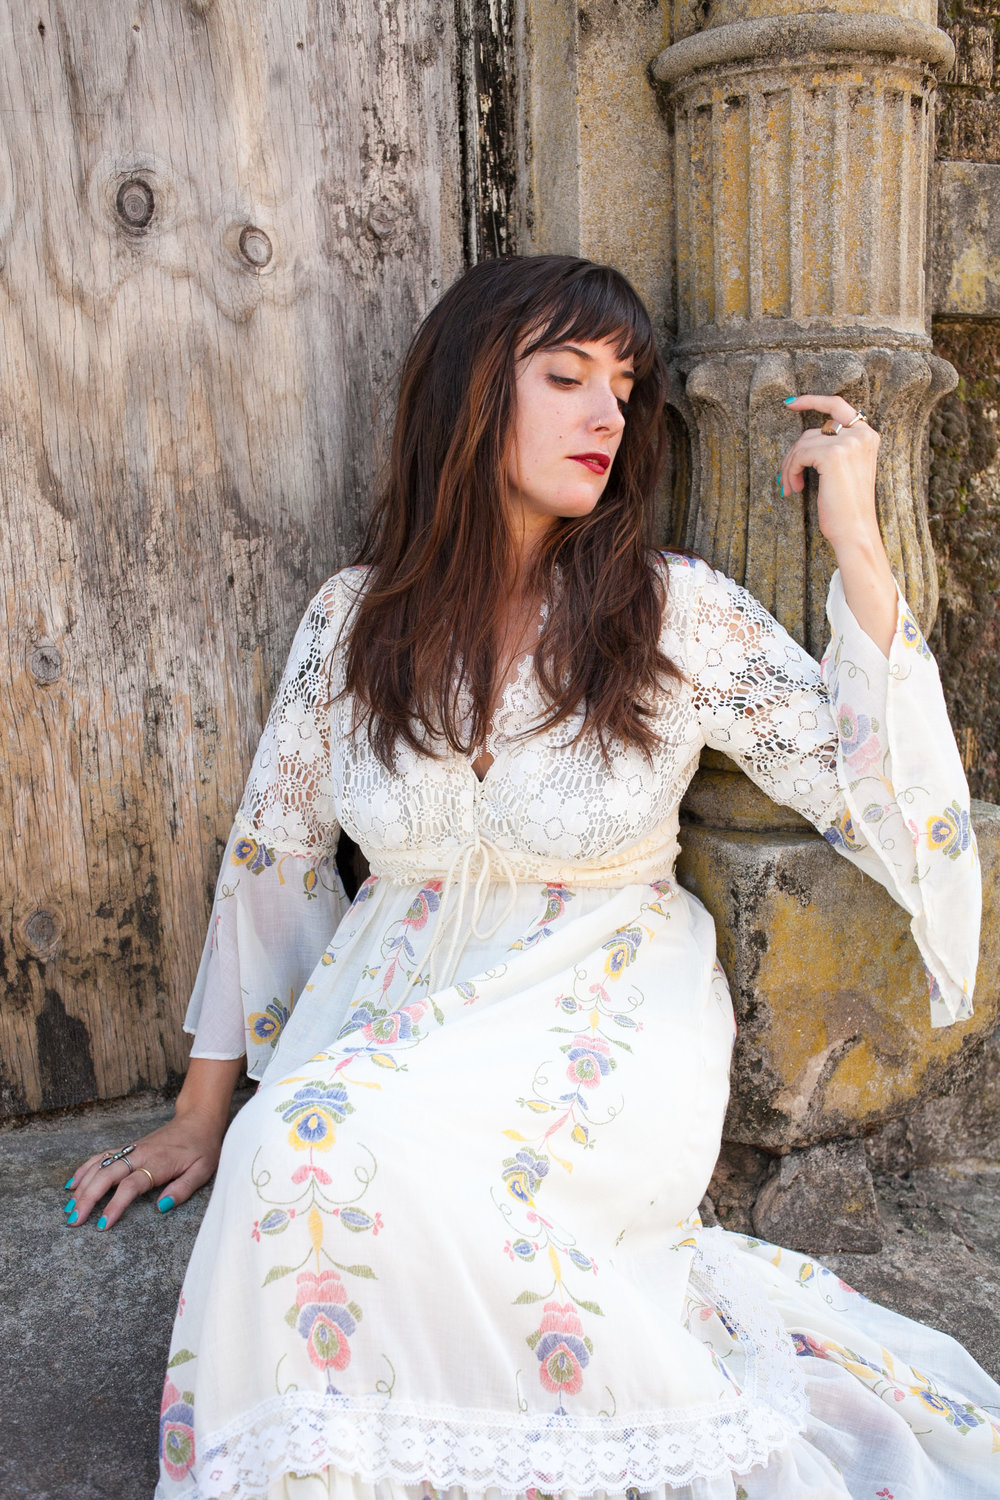 Gorgeous 1970s maxi dress modeled by Andrea Kinnison.